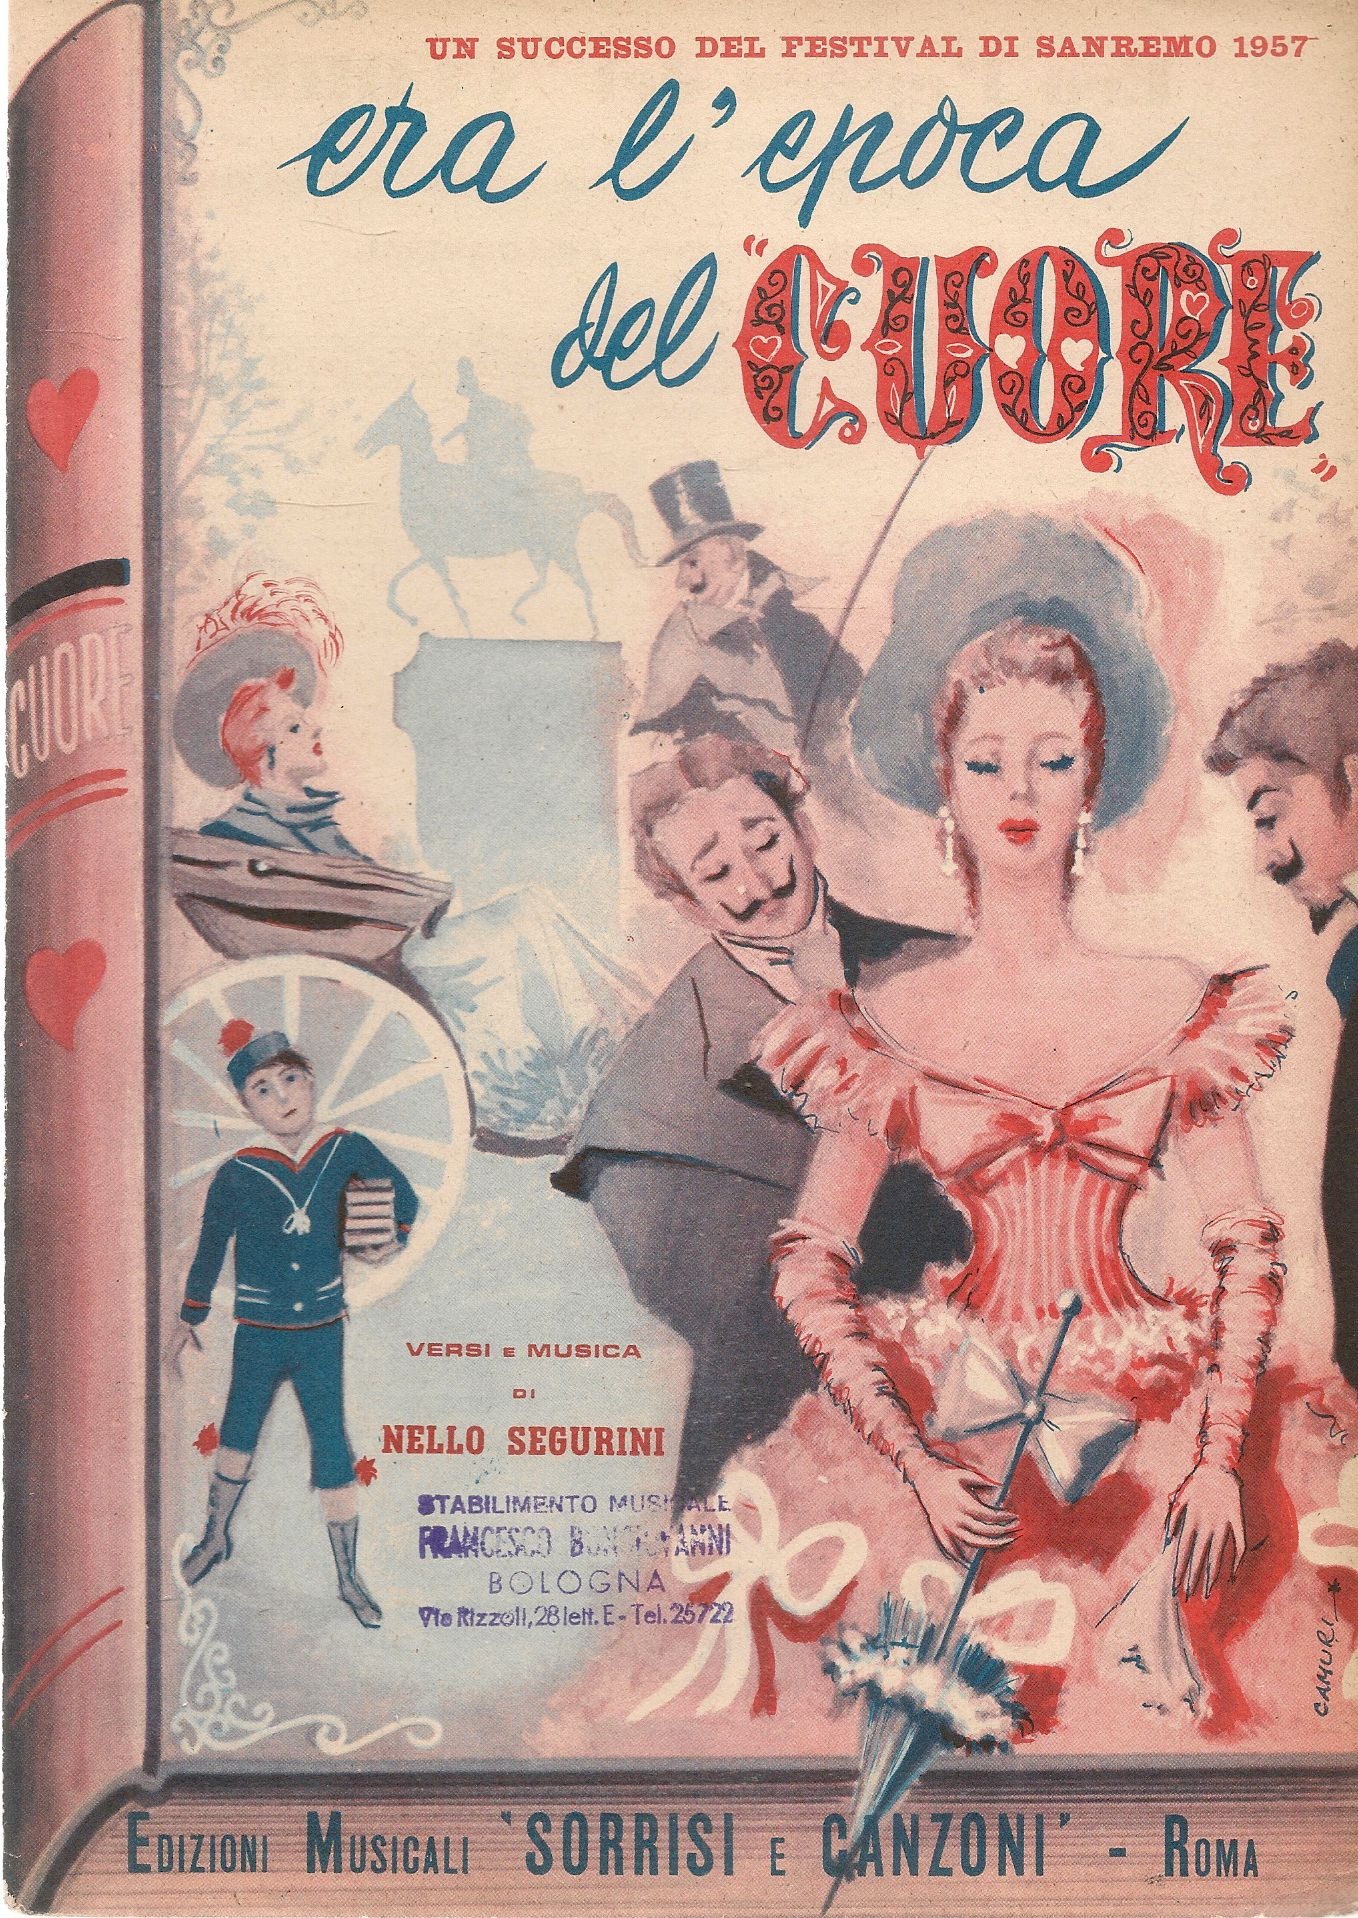 ERA L'EPOCA DEL CUORE - SANREMO 1957 - SPARTITO-SHEET MUSIC